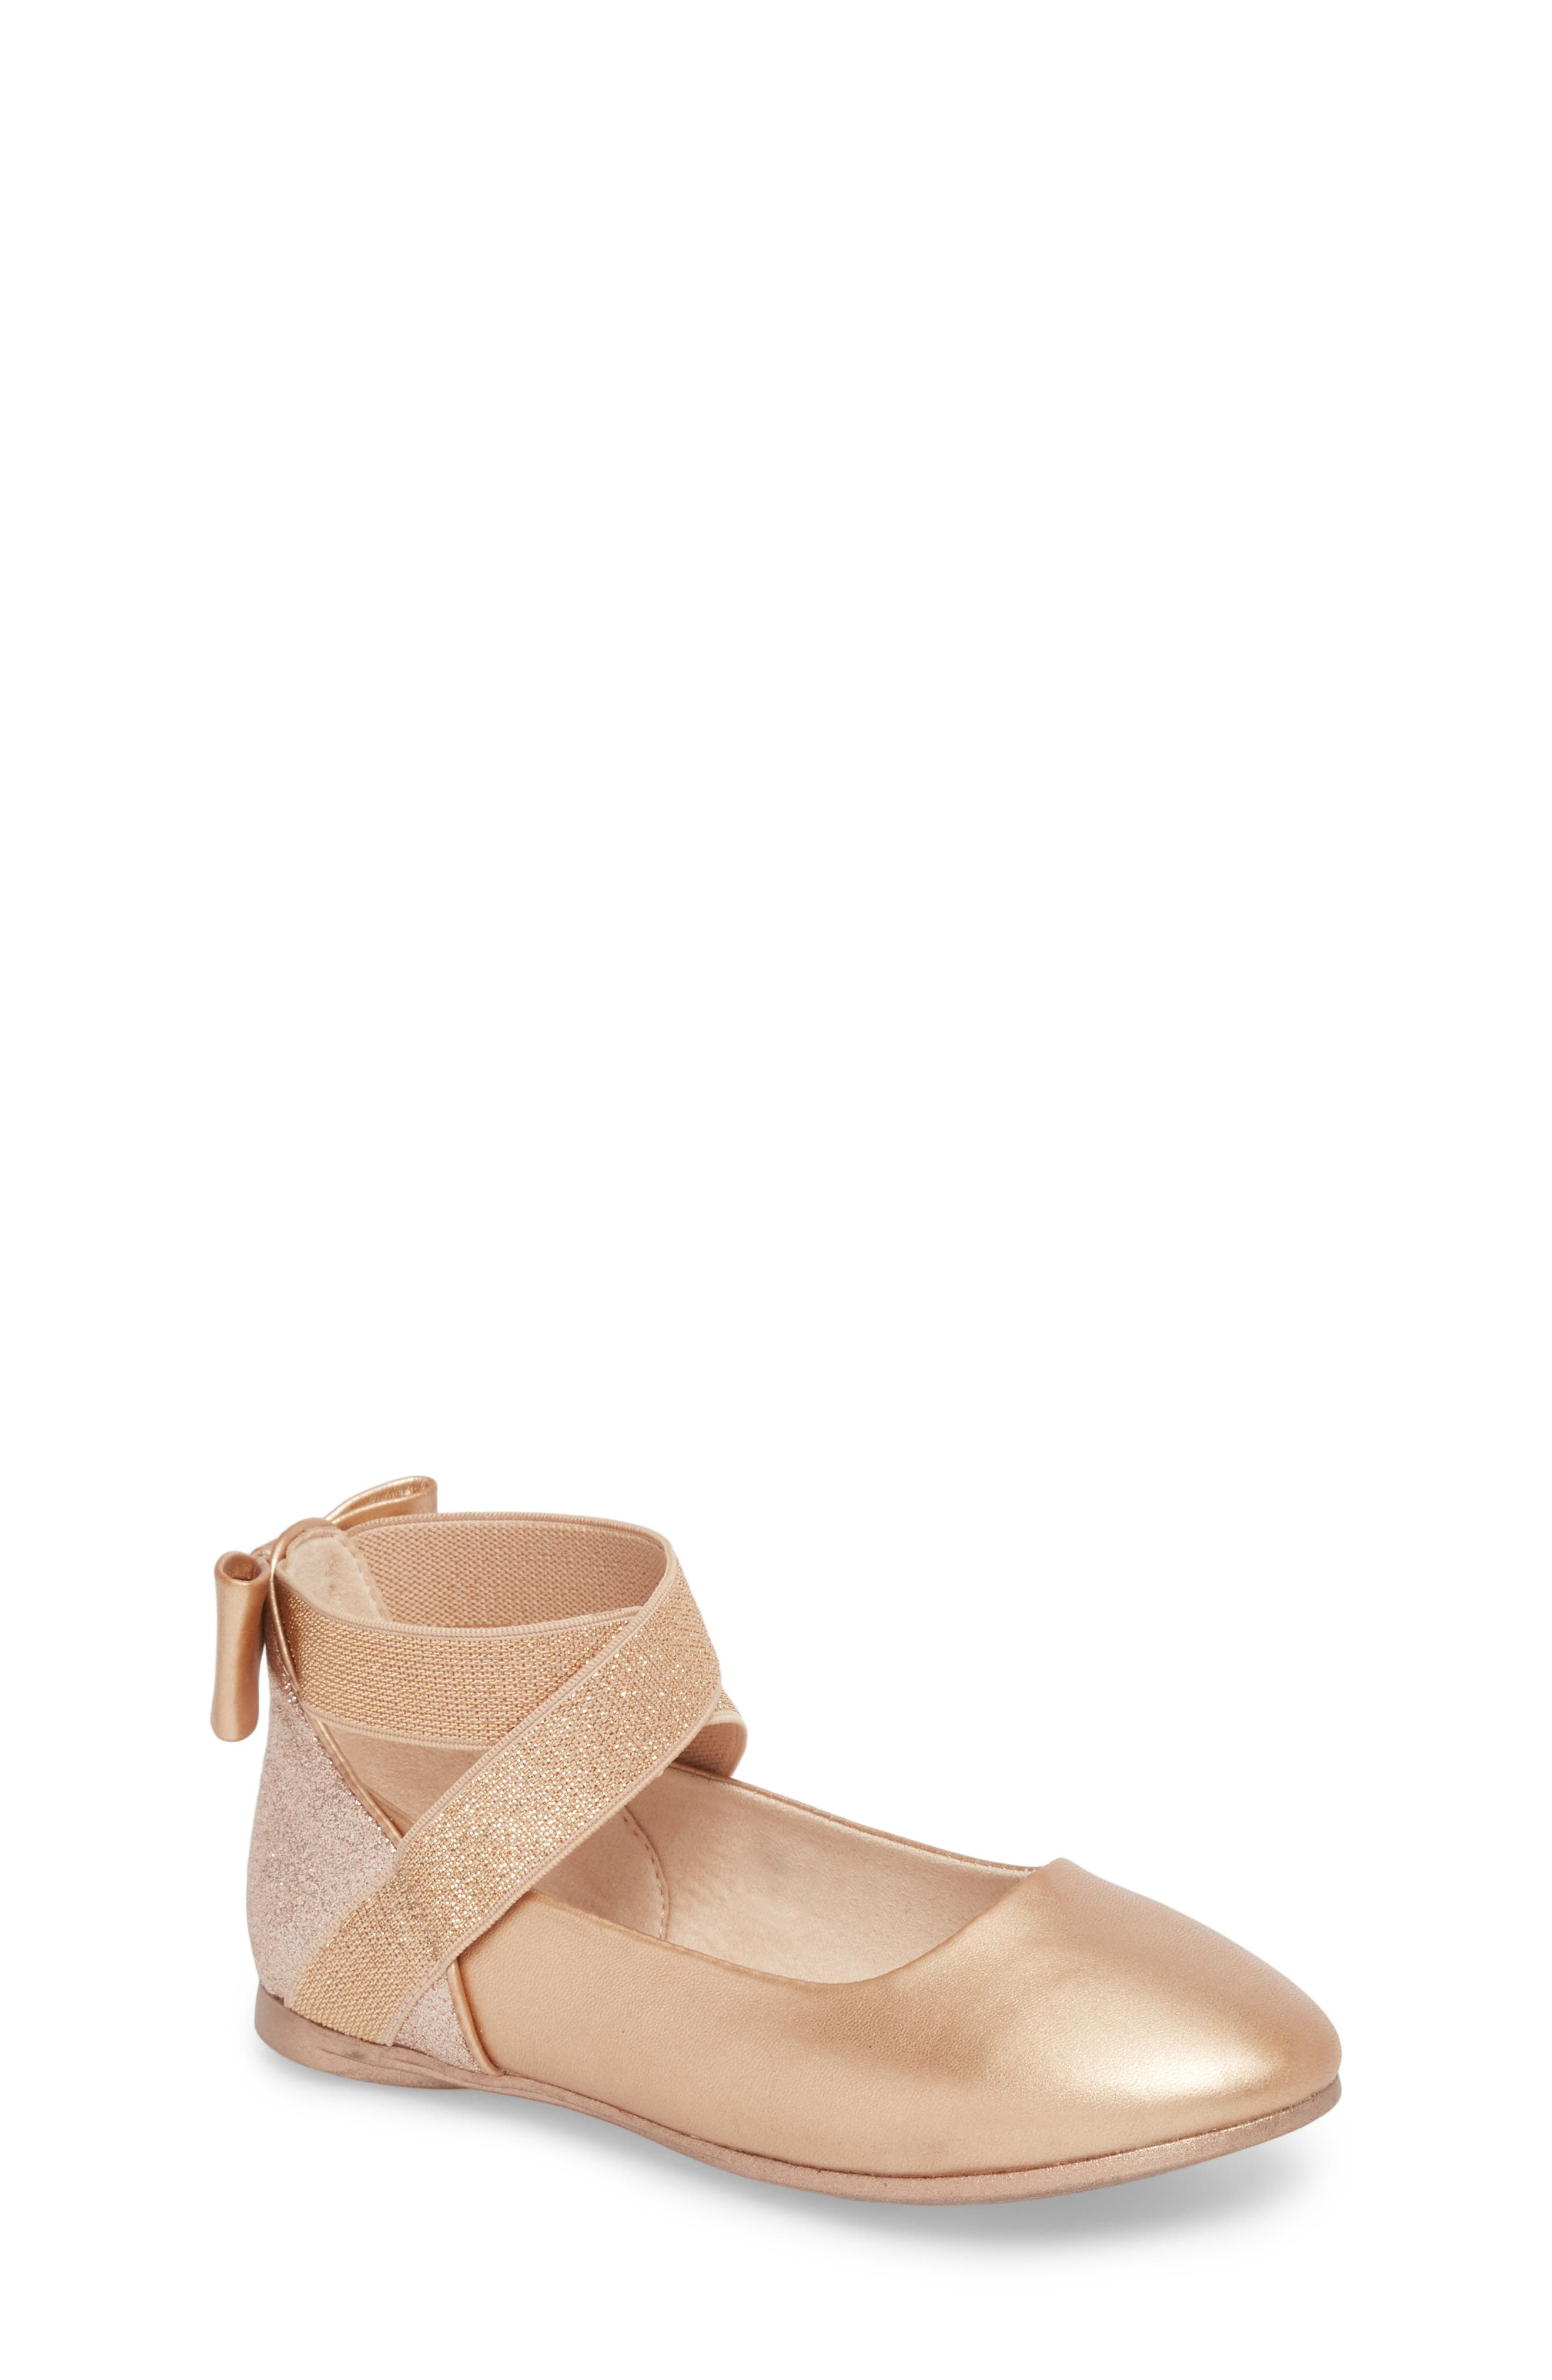 KENNETH COLE NEW YORK Glitz Flat, Main, color, PALE ROSE